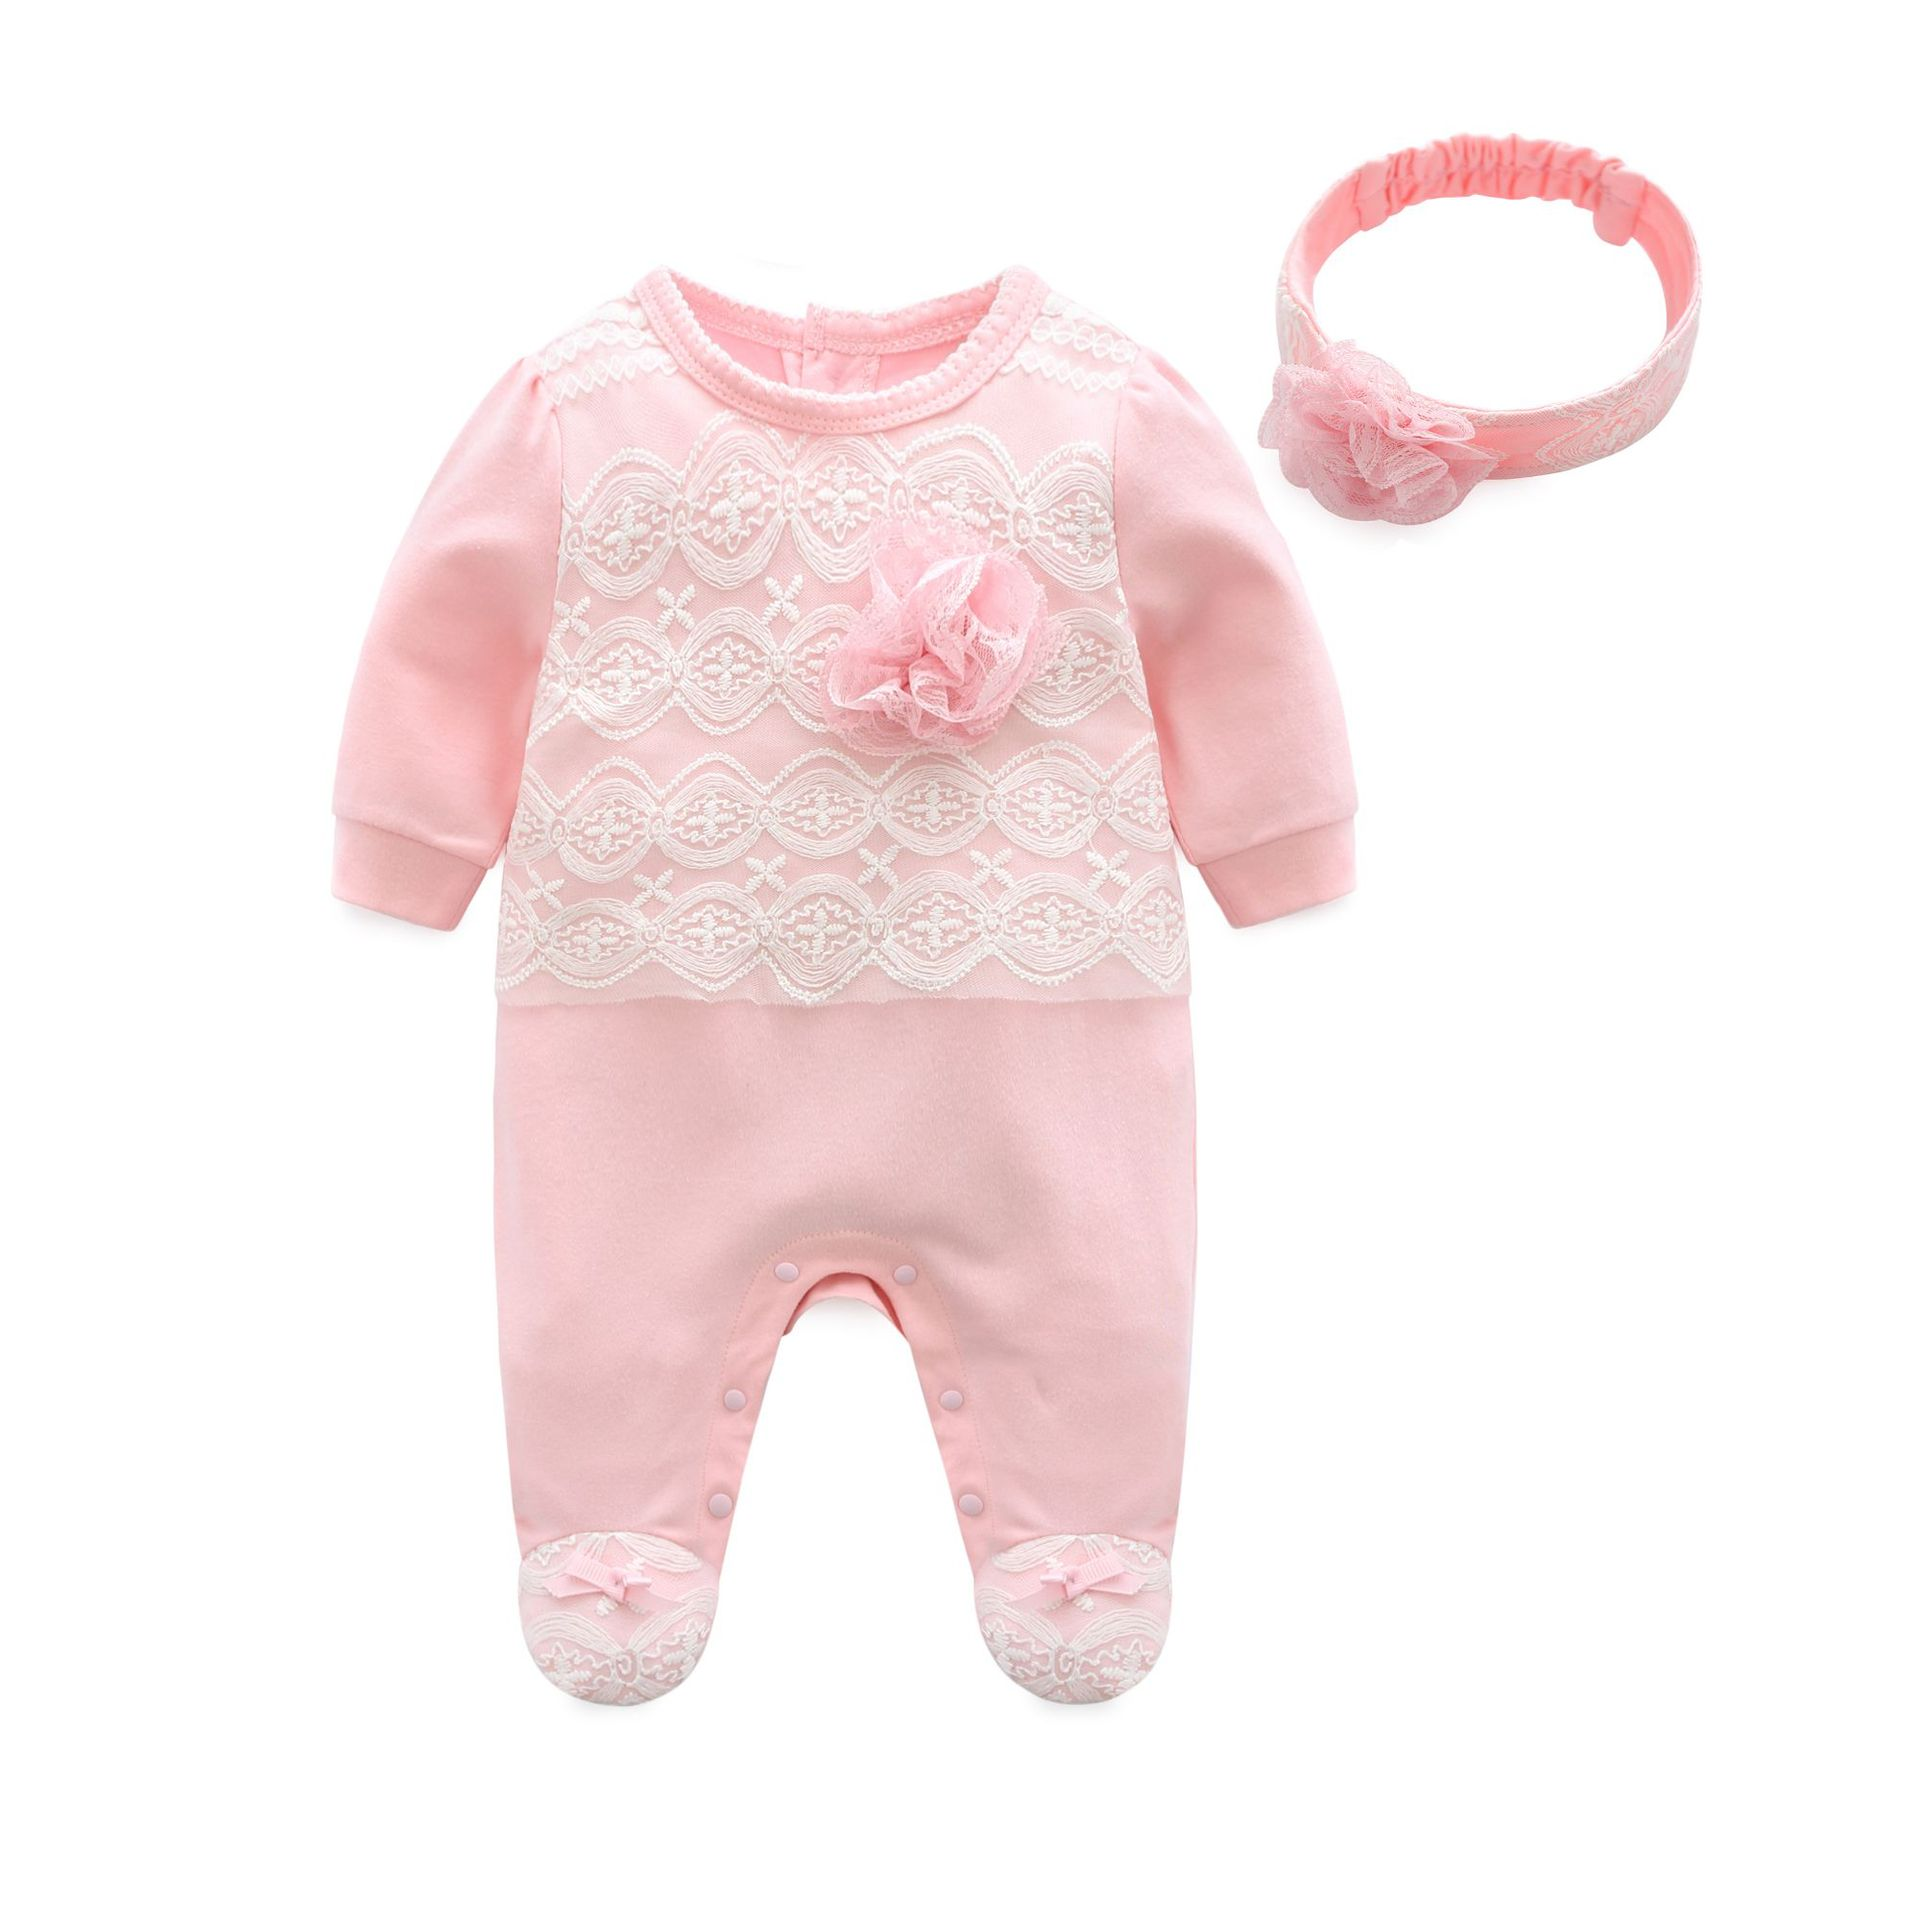 23917c67c 2018 spring baby products lace long sleeve rompers + headwear 2 ...